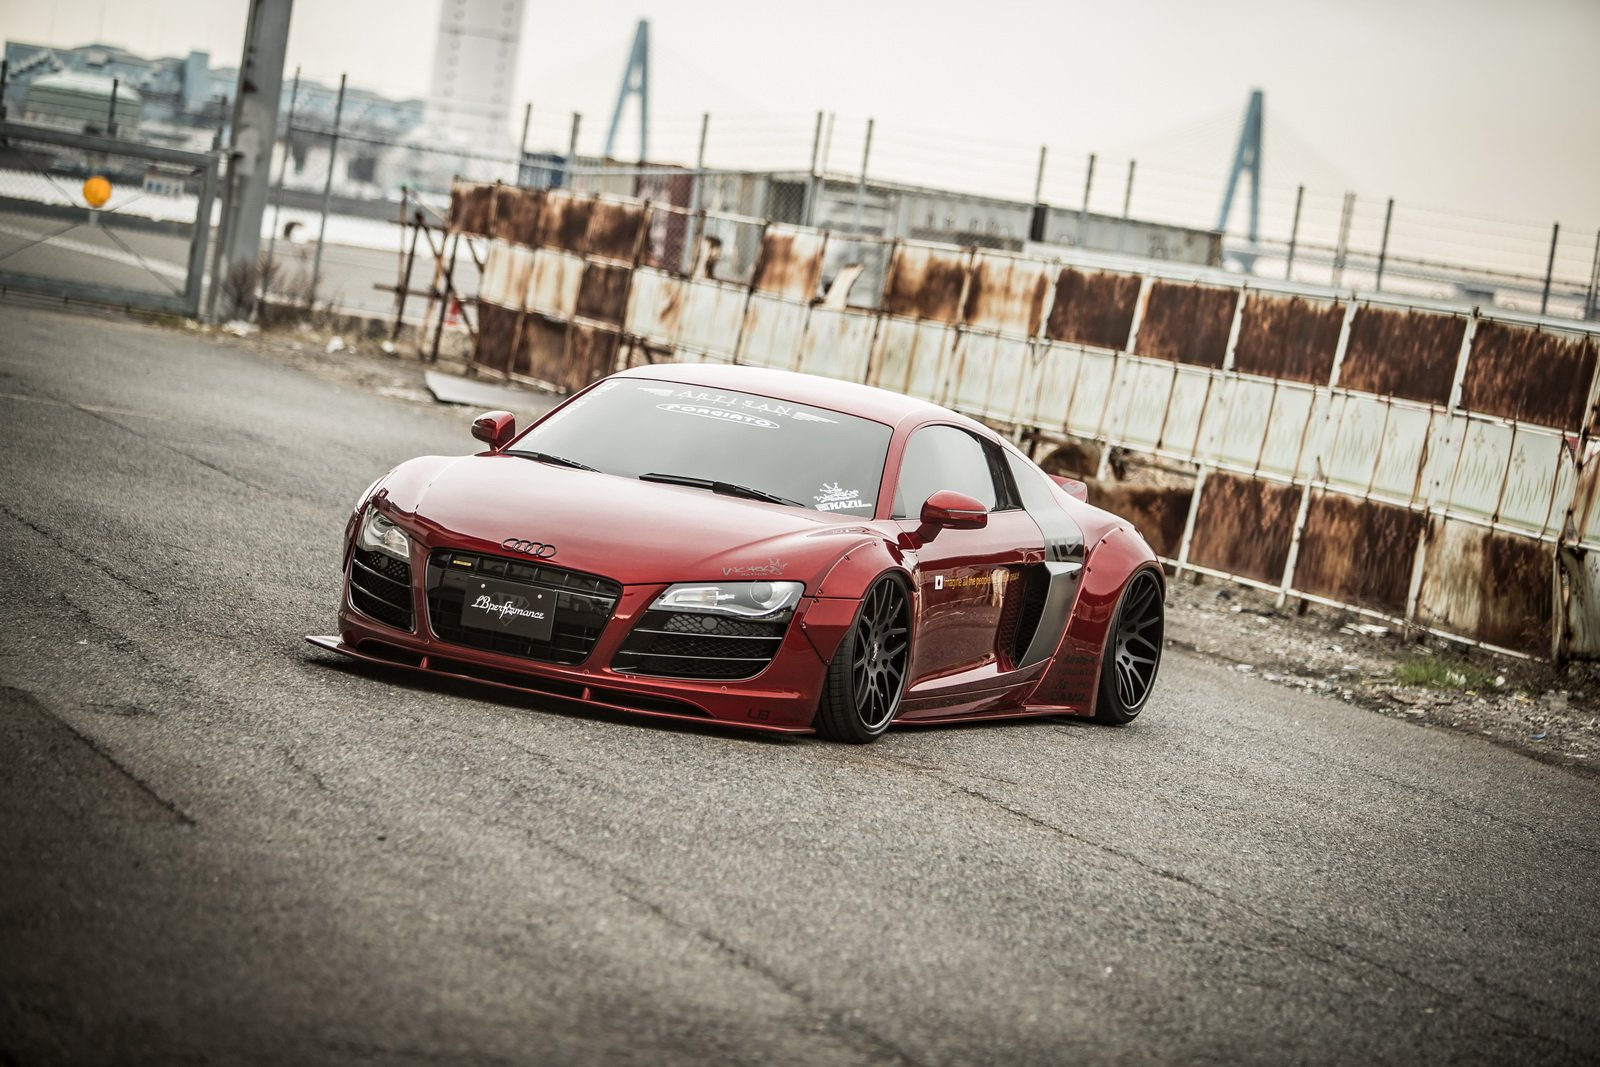 liberty walk audi r8 cars bodykit modified wallpaper 1600x1067 917959 wallpaperup. Black Bedroom Furniture Sets. Home Design Ideas